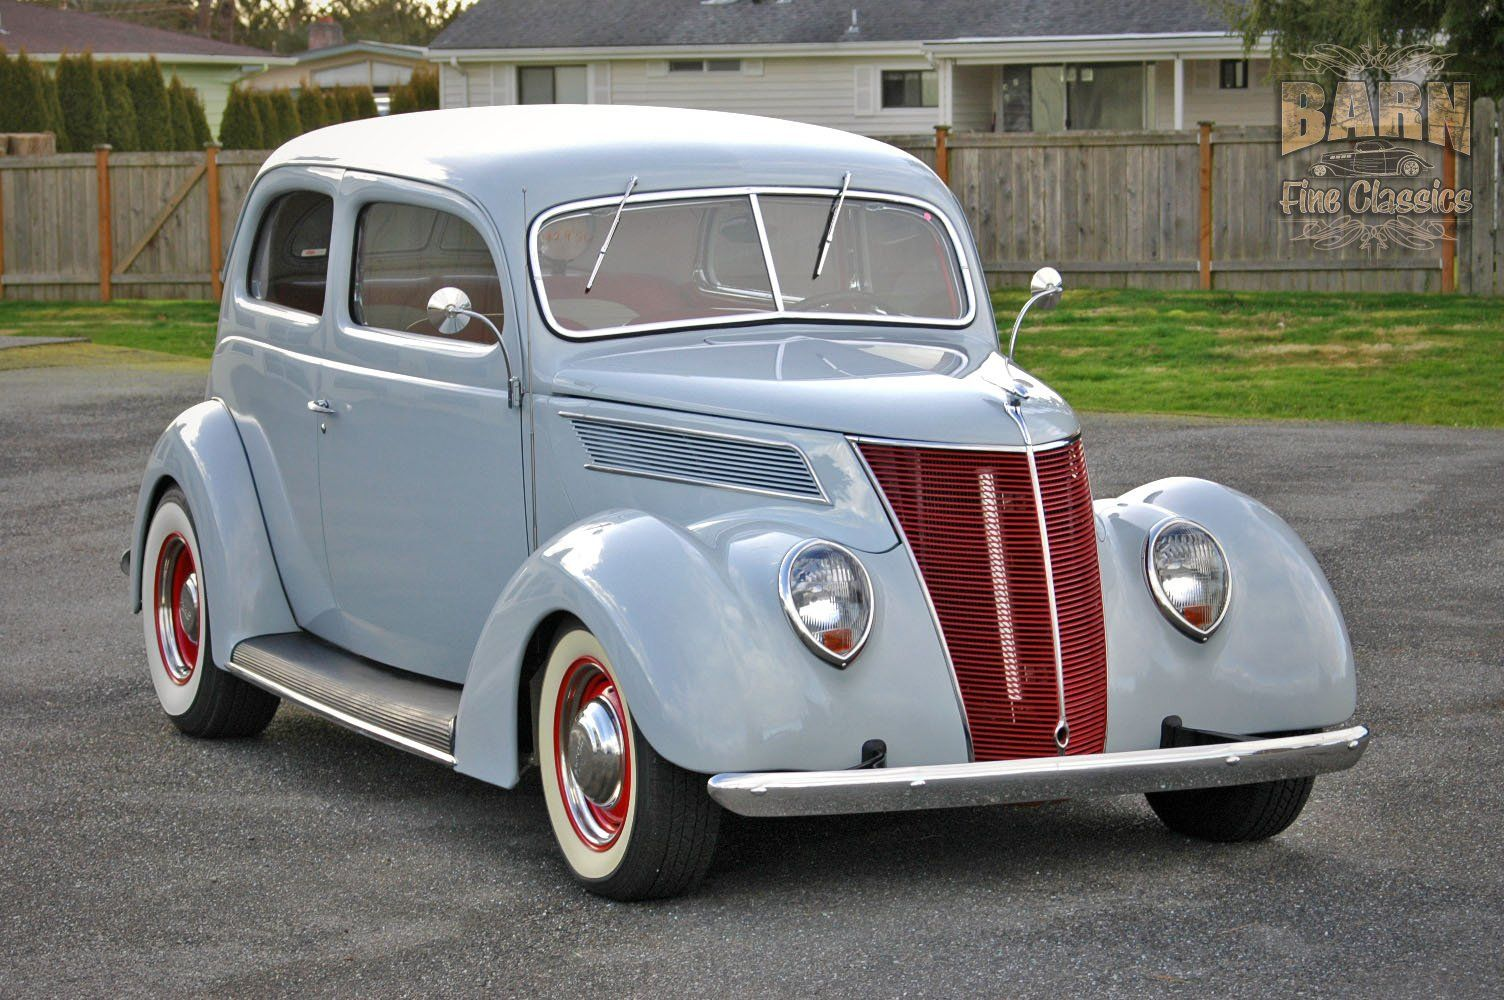 1937 ford sedan 2 door slantback hotrod hot rod old school usa 1500x1000 02 wallpaper for 1937 ford two door sedan